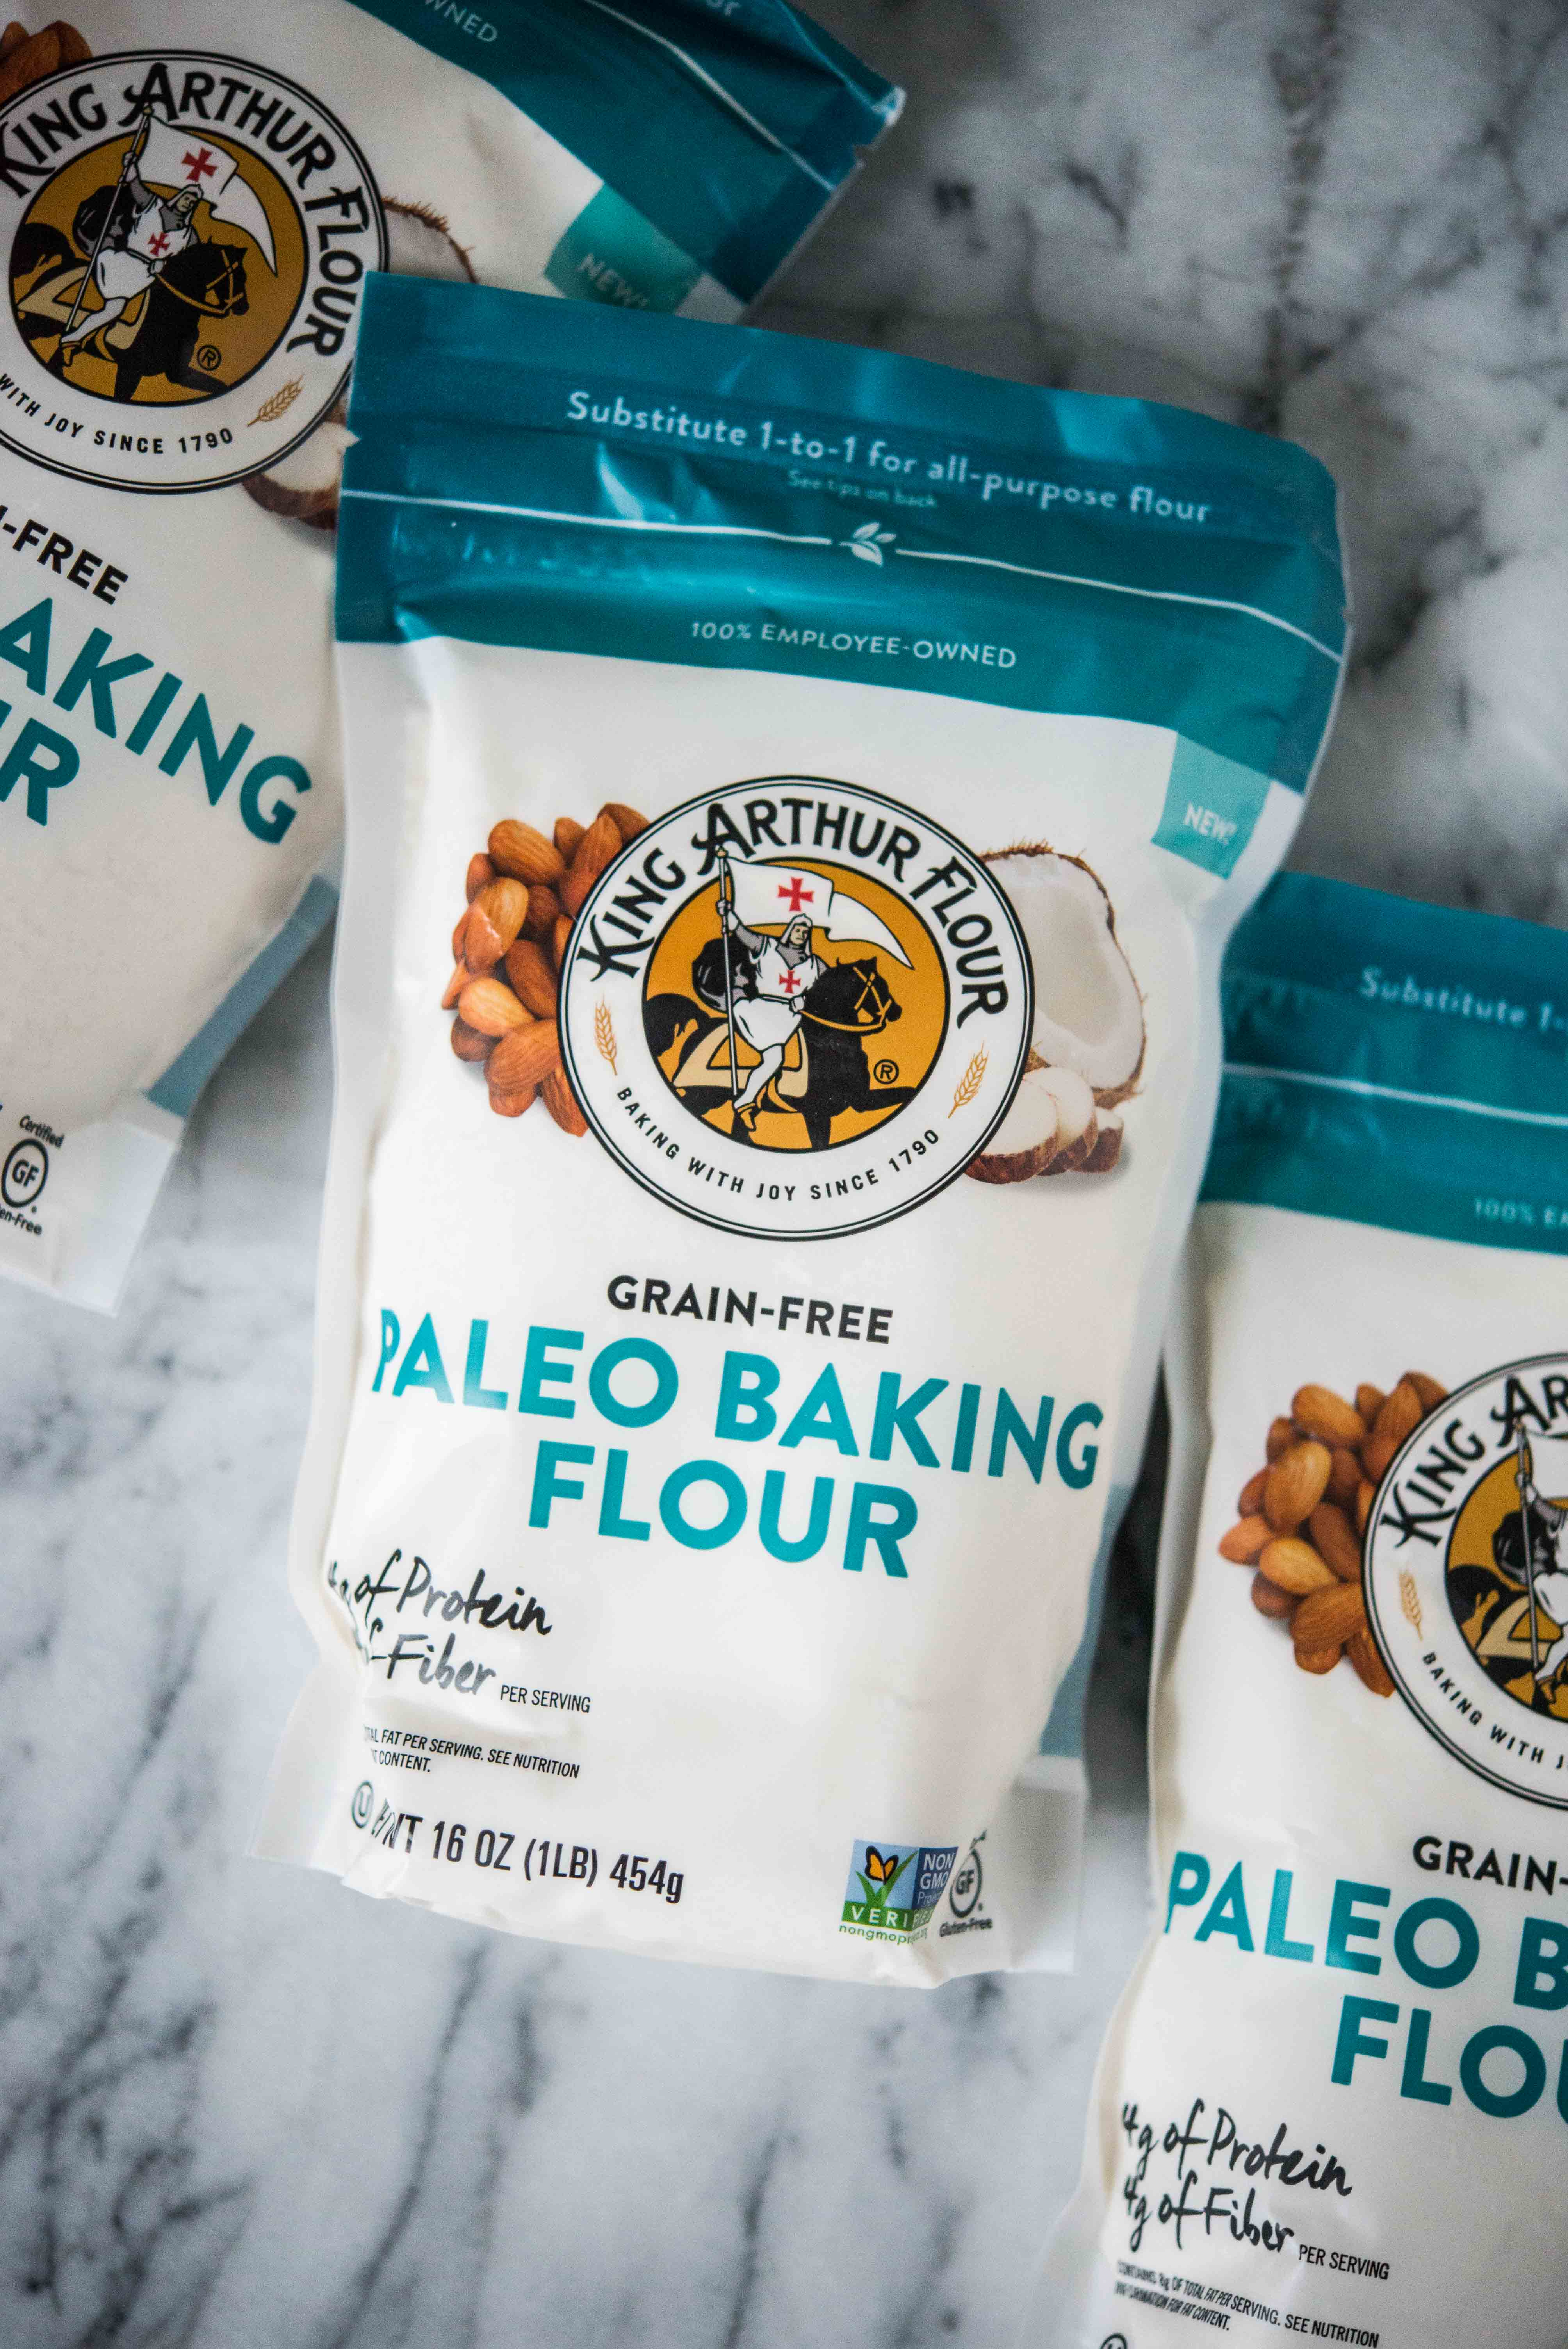 bags of king arthur paleo baking flour on a marble surface